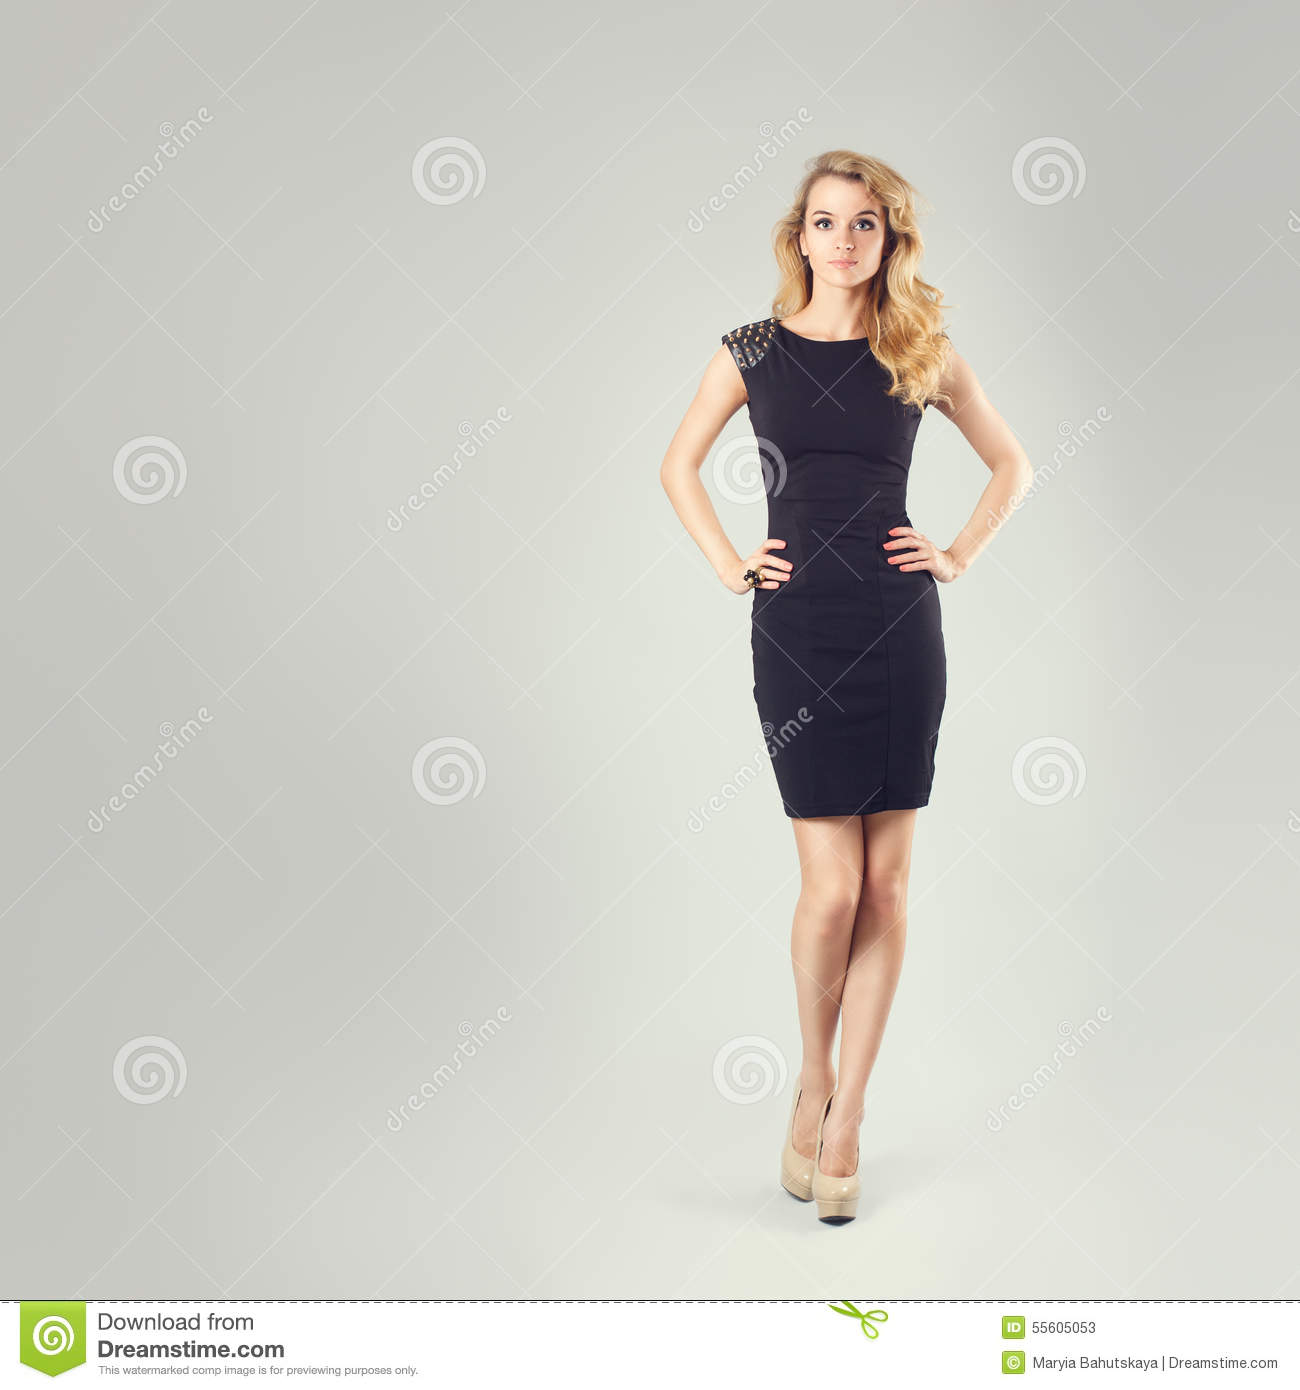 Woman hands on hips body language